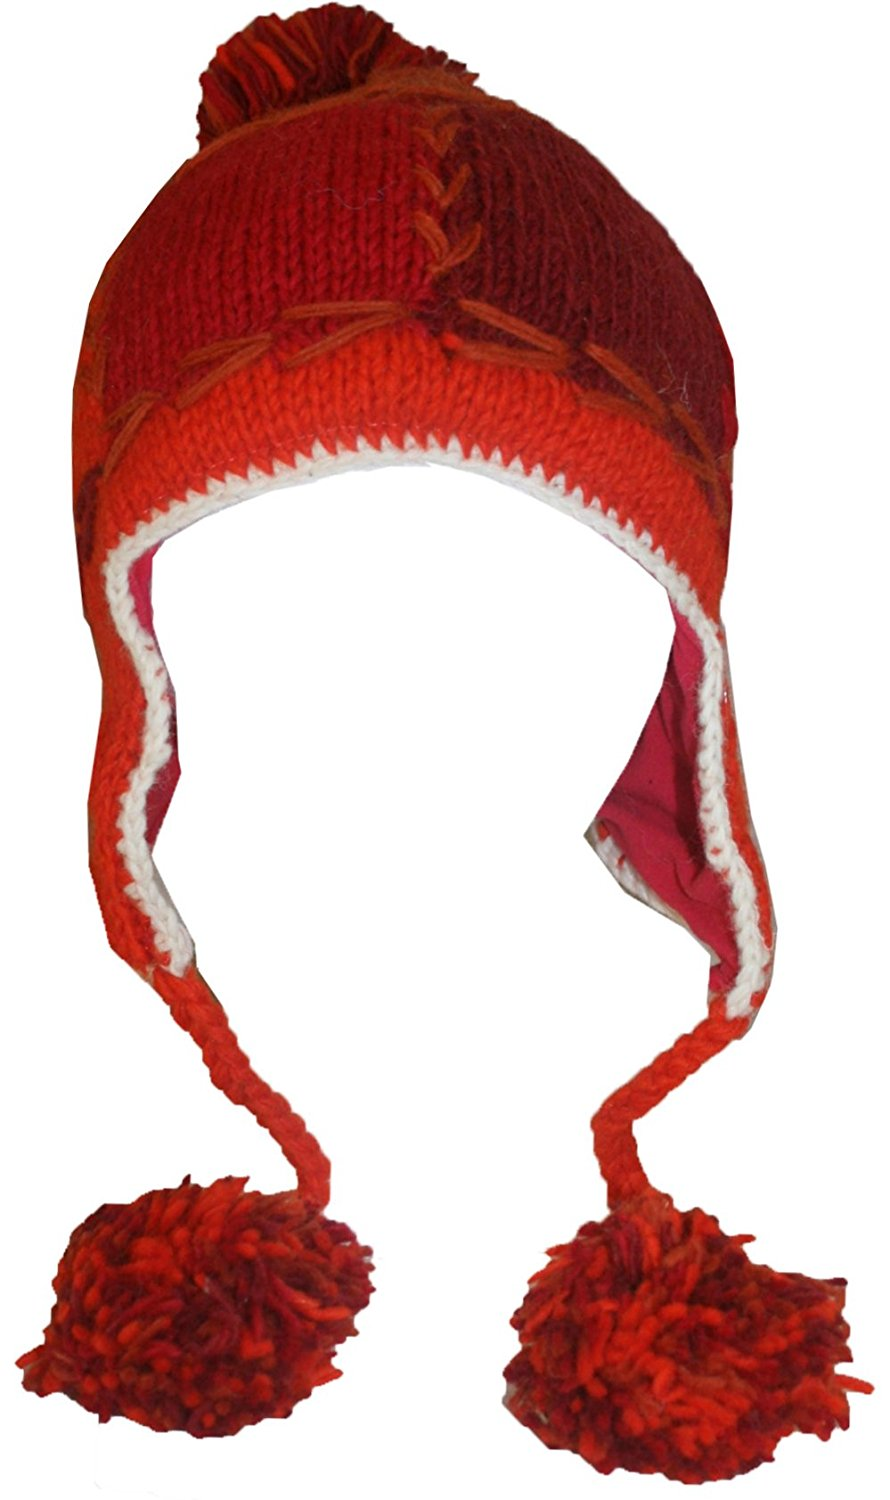 Knit Rainbow Beanie Earflap Khane Hat - Agan Traders, Red Multi